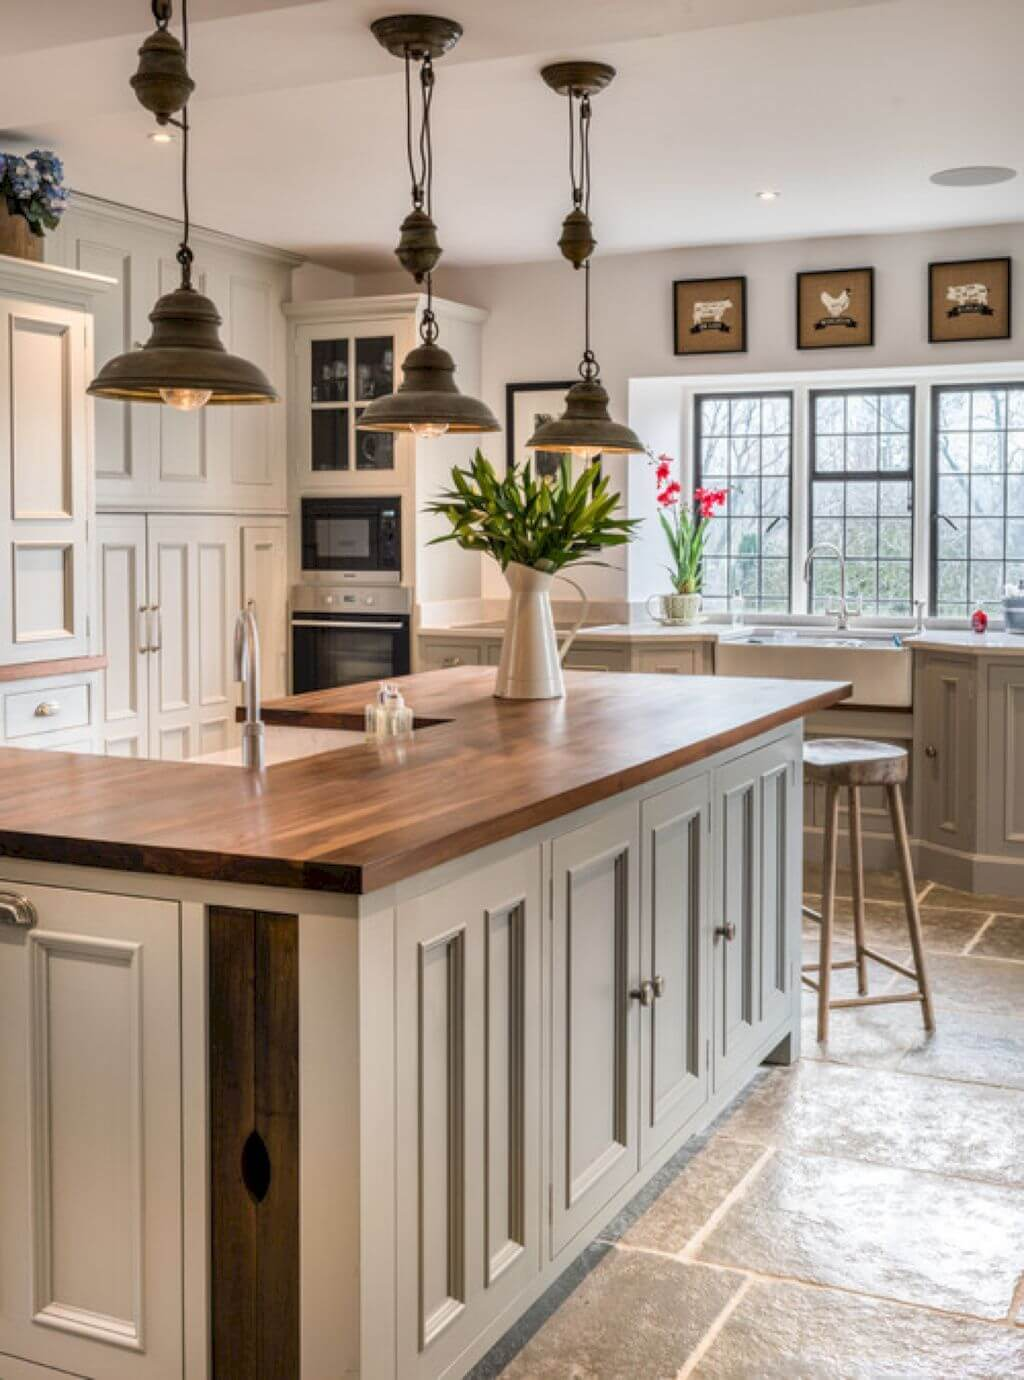 35 Best Farmhouse Kitchen Cabinet Ideas and Designs for 2020 on Farmhouse Kitchen Ideas  id=44071